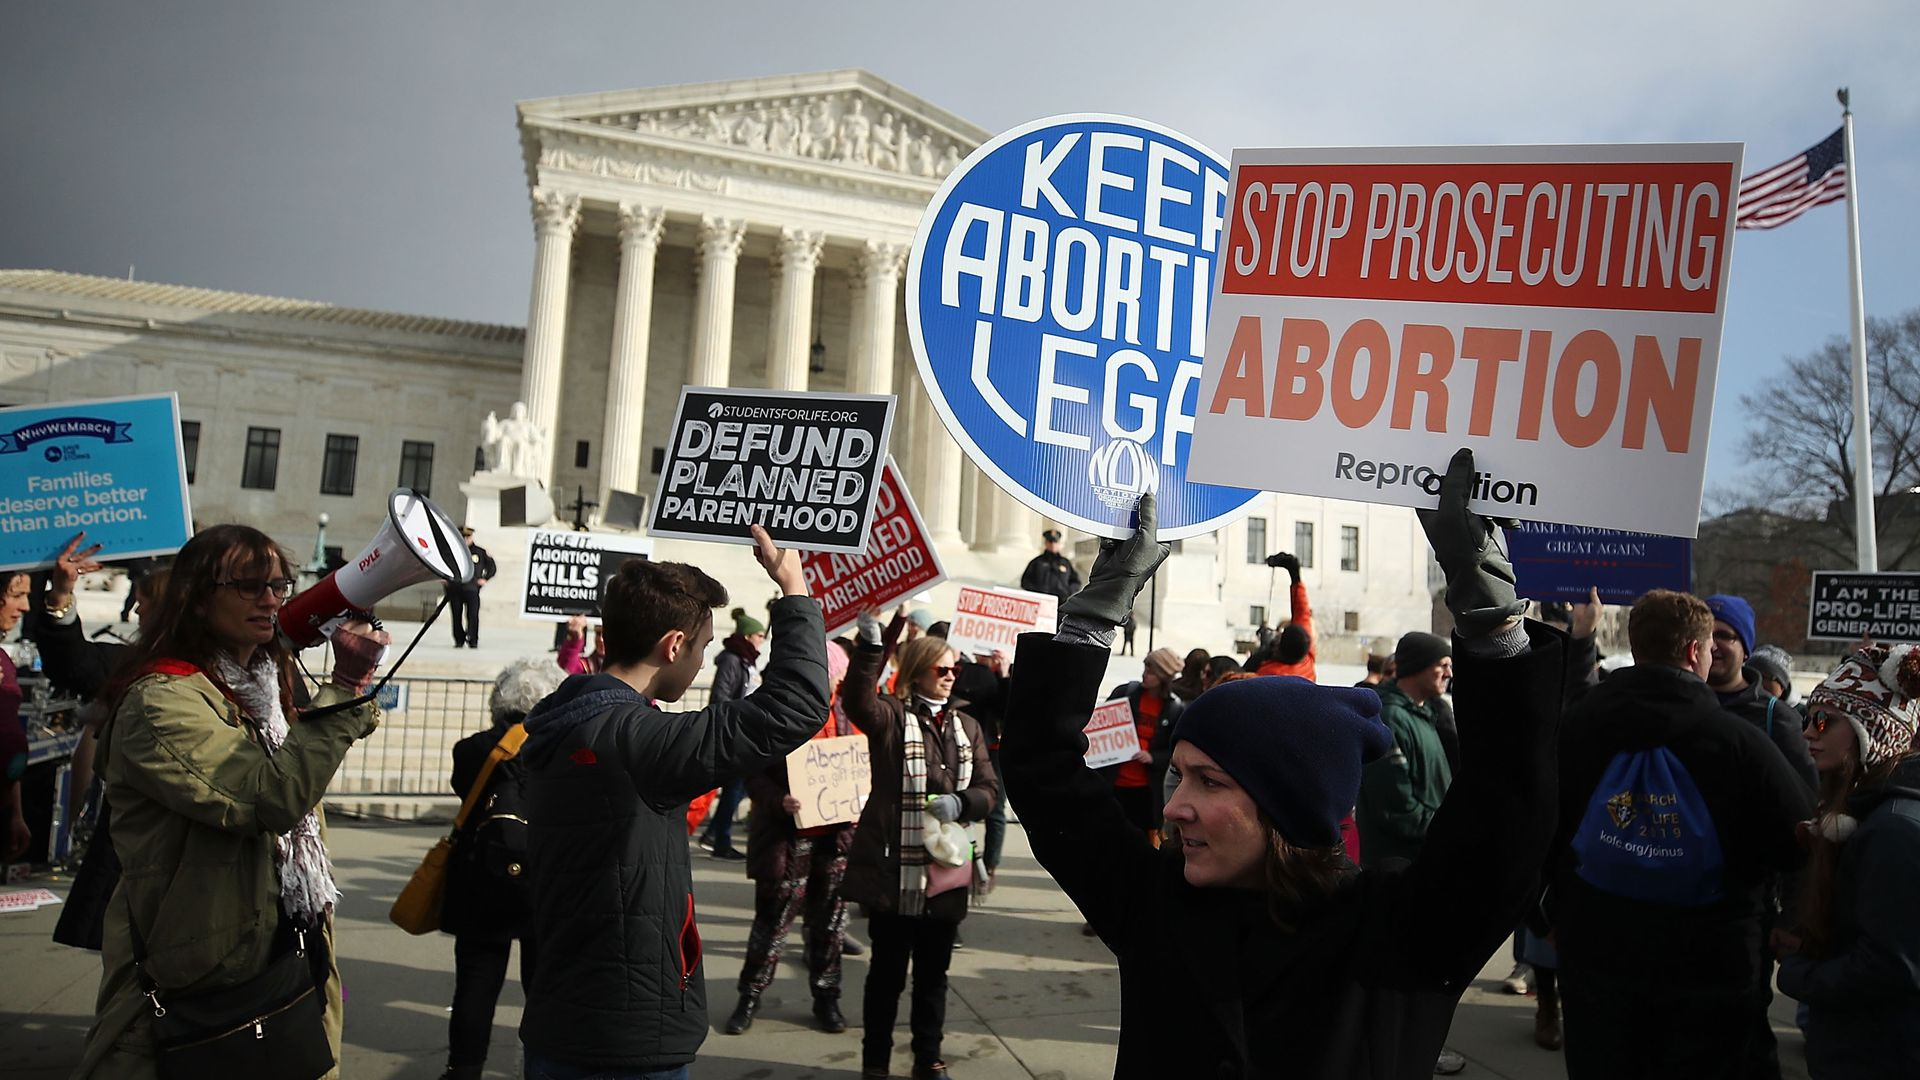 Supporters of legal access to abortion, as well as anti-abortion activists, rally outside the Supreme Court.